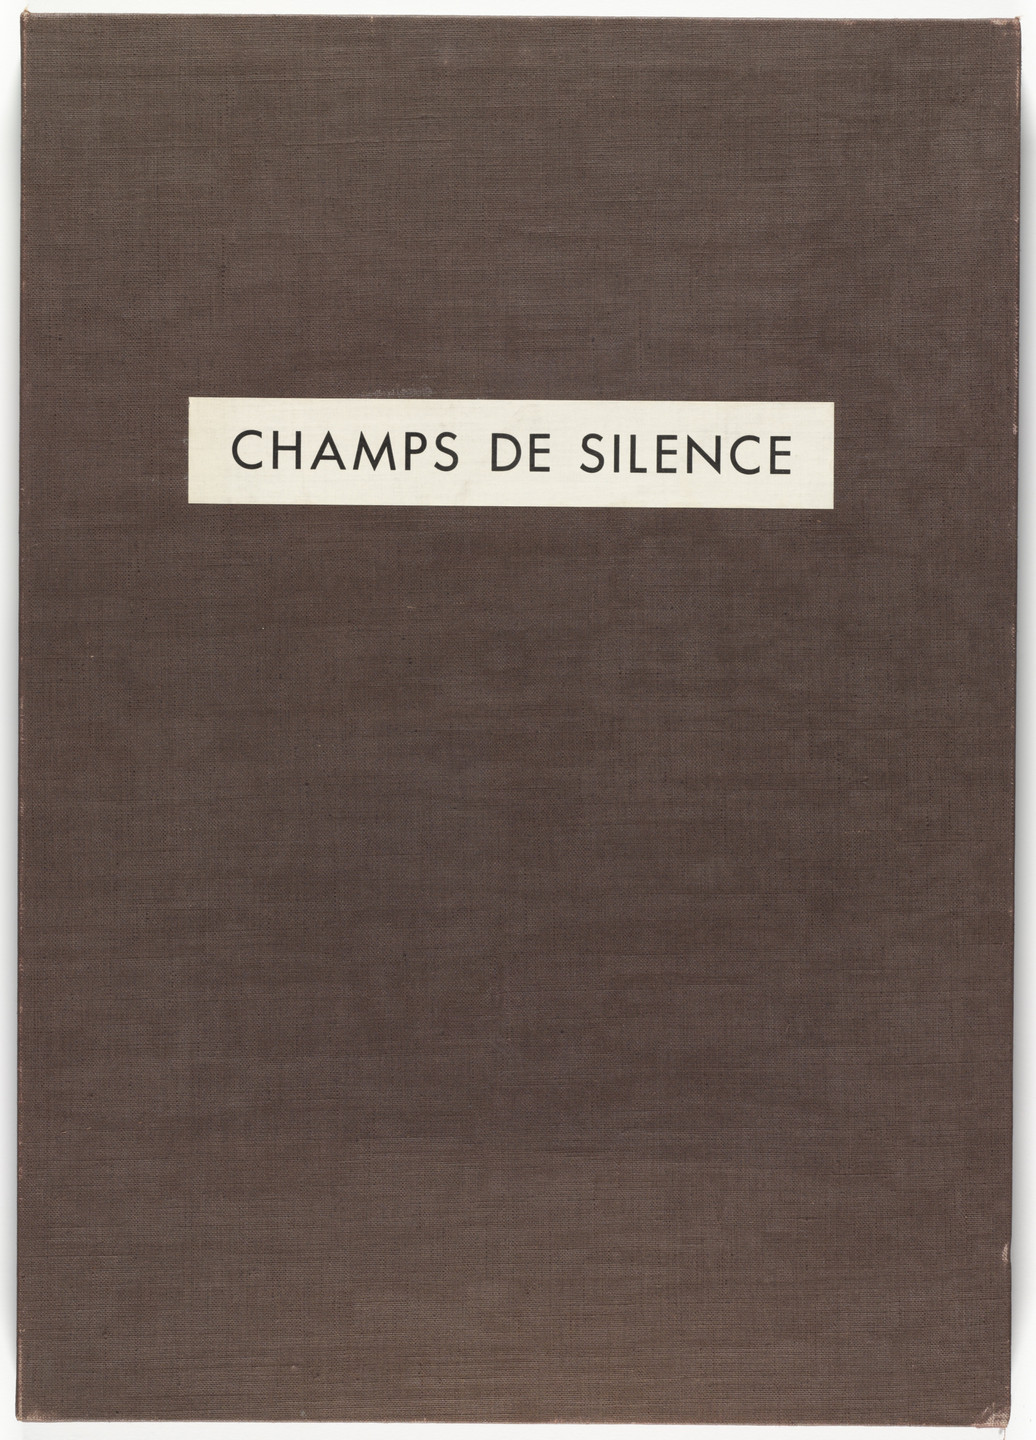 Jean Dubuffet. Fields of Silence (Champs de silence) from Phenomena (Les Phénomènes). 1959